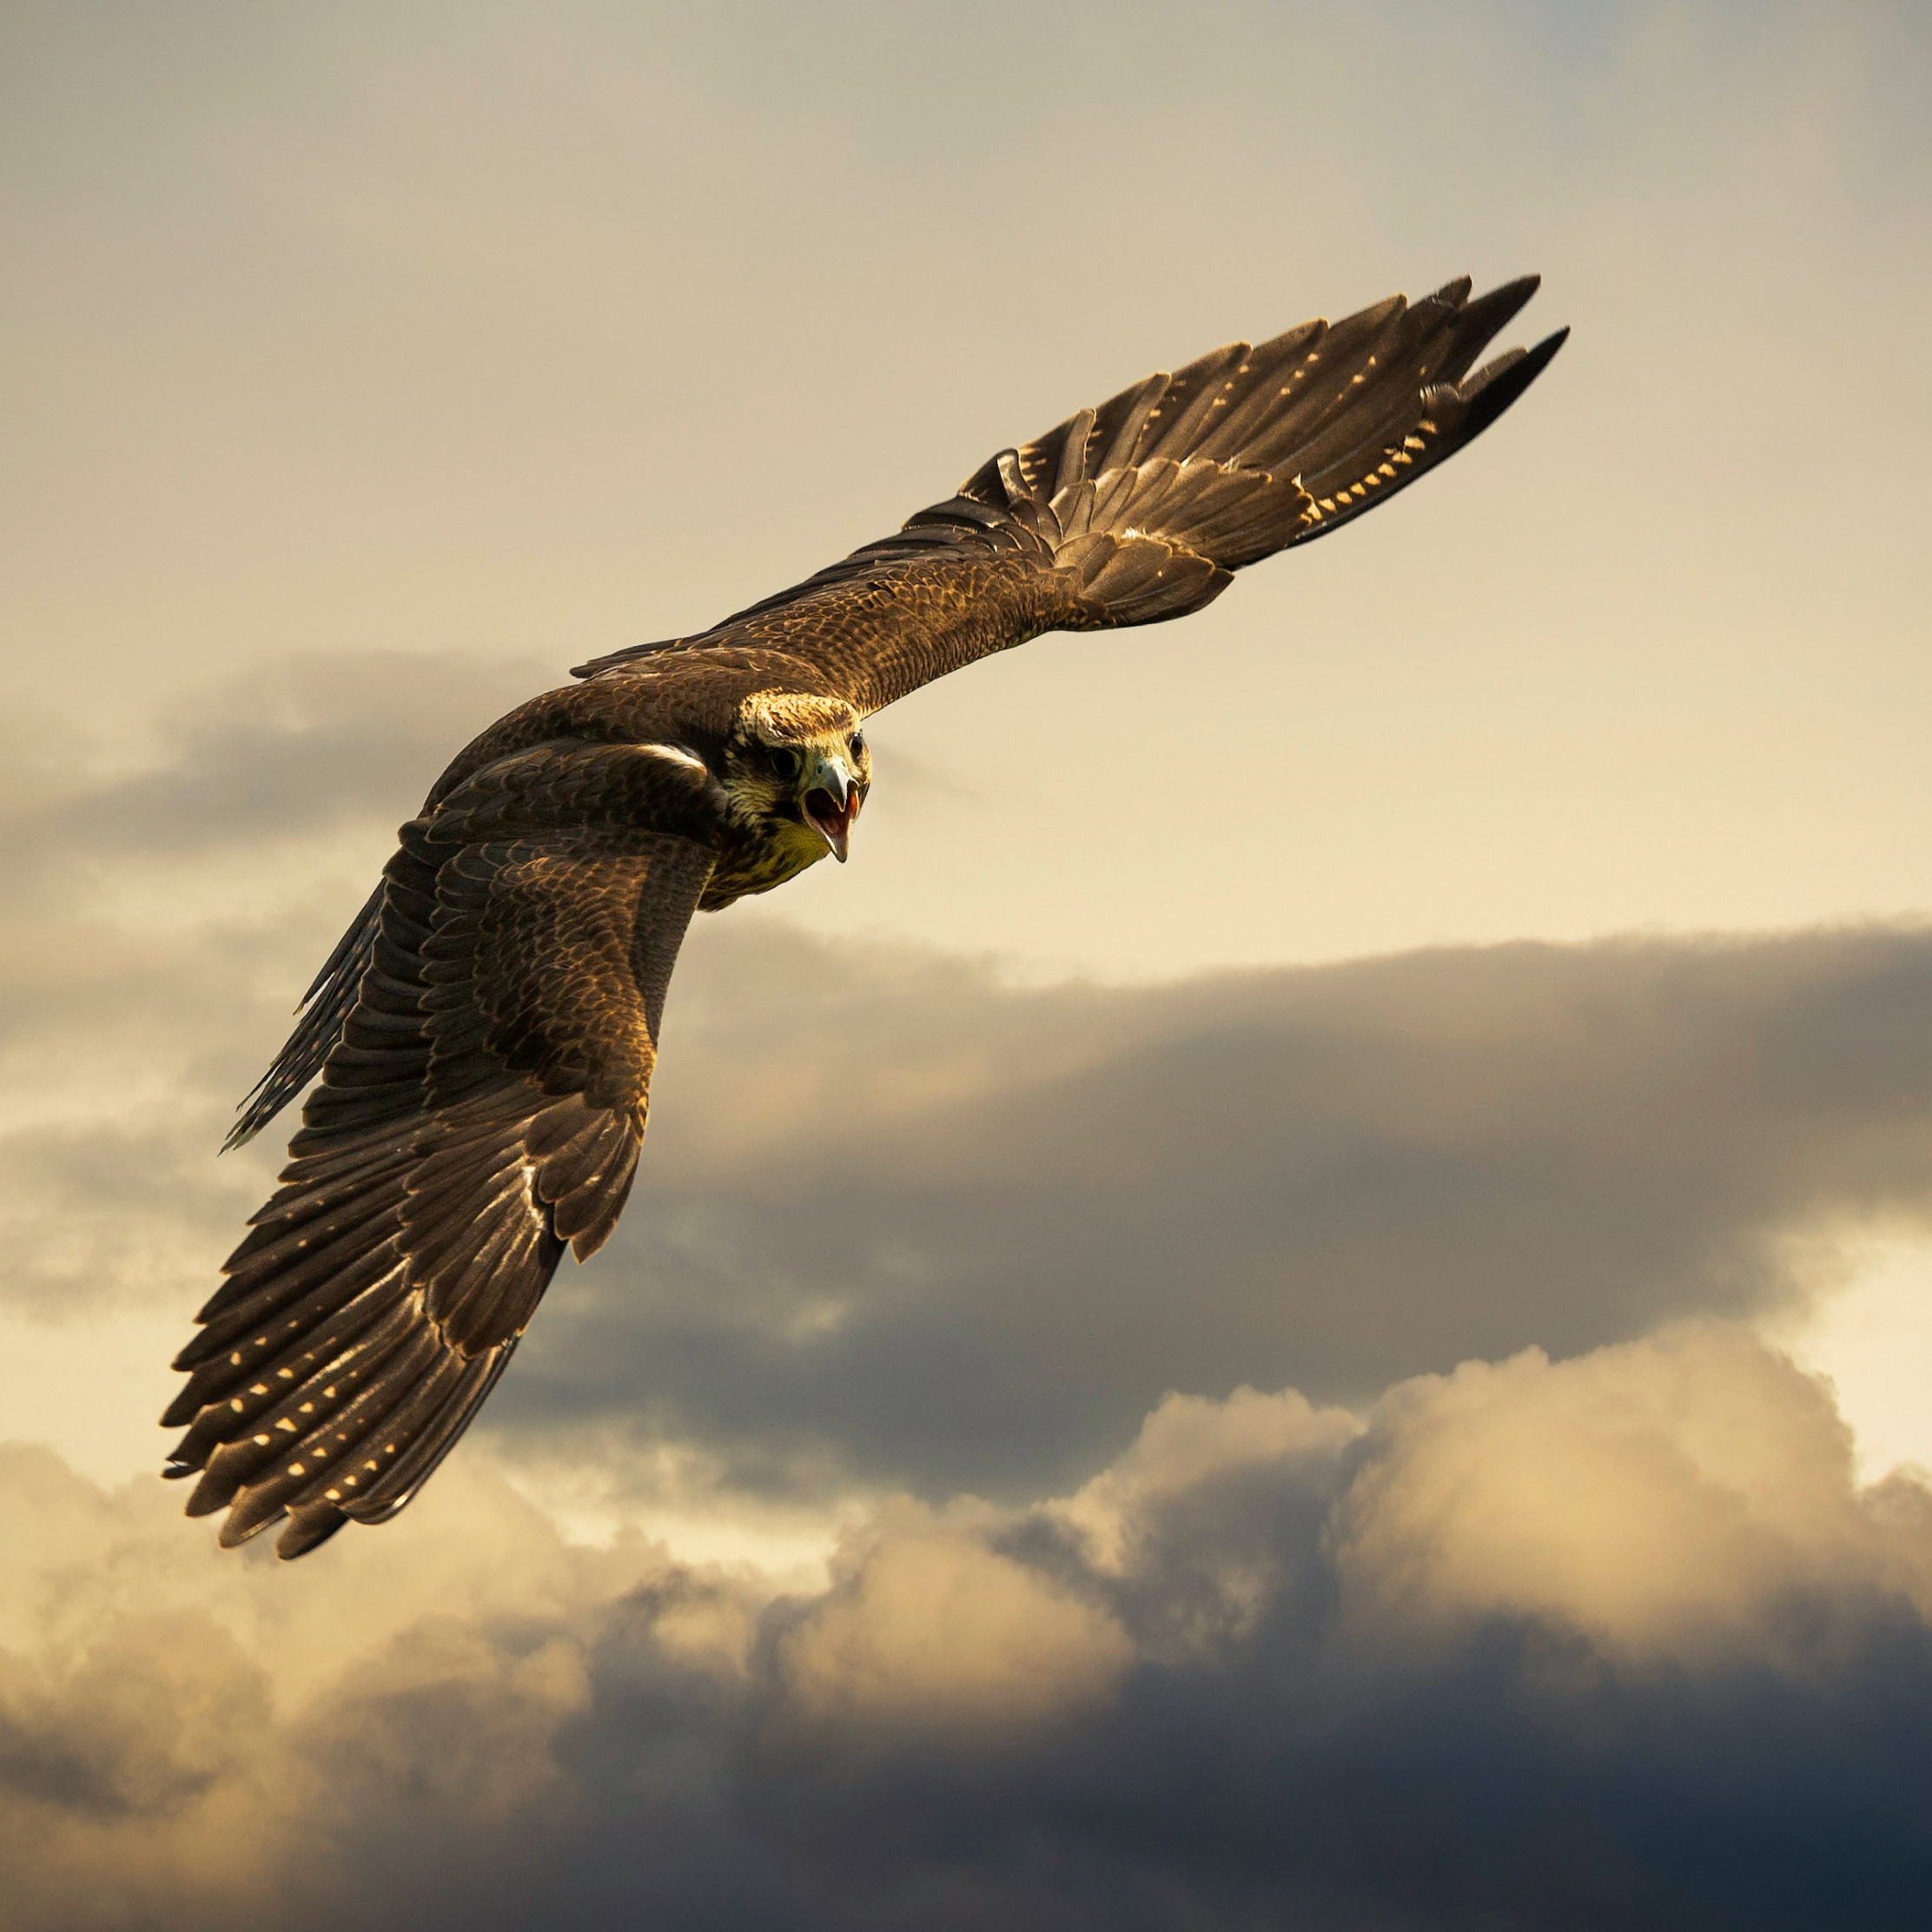 Flying hawk wallpaper 2224x2224